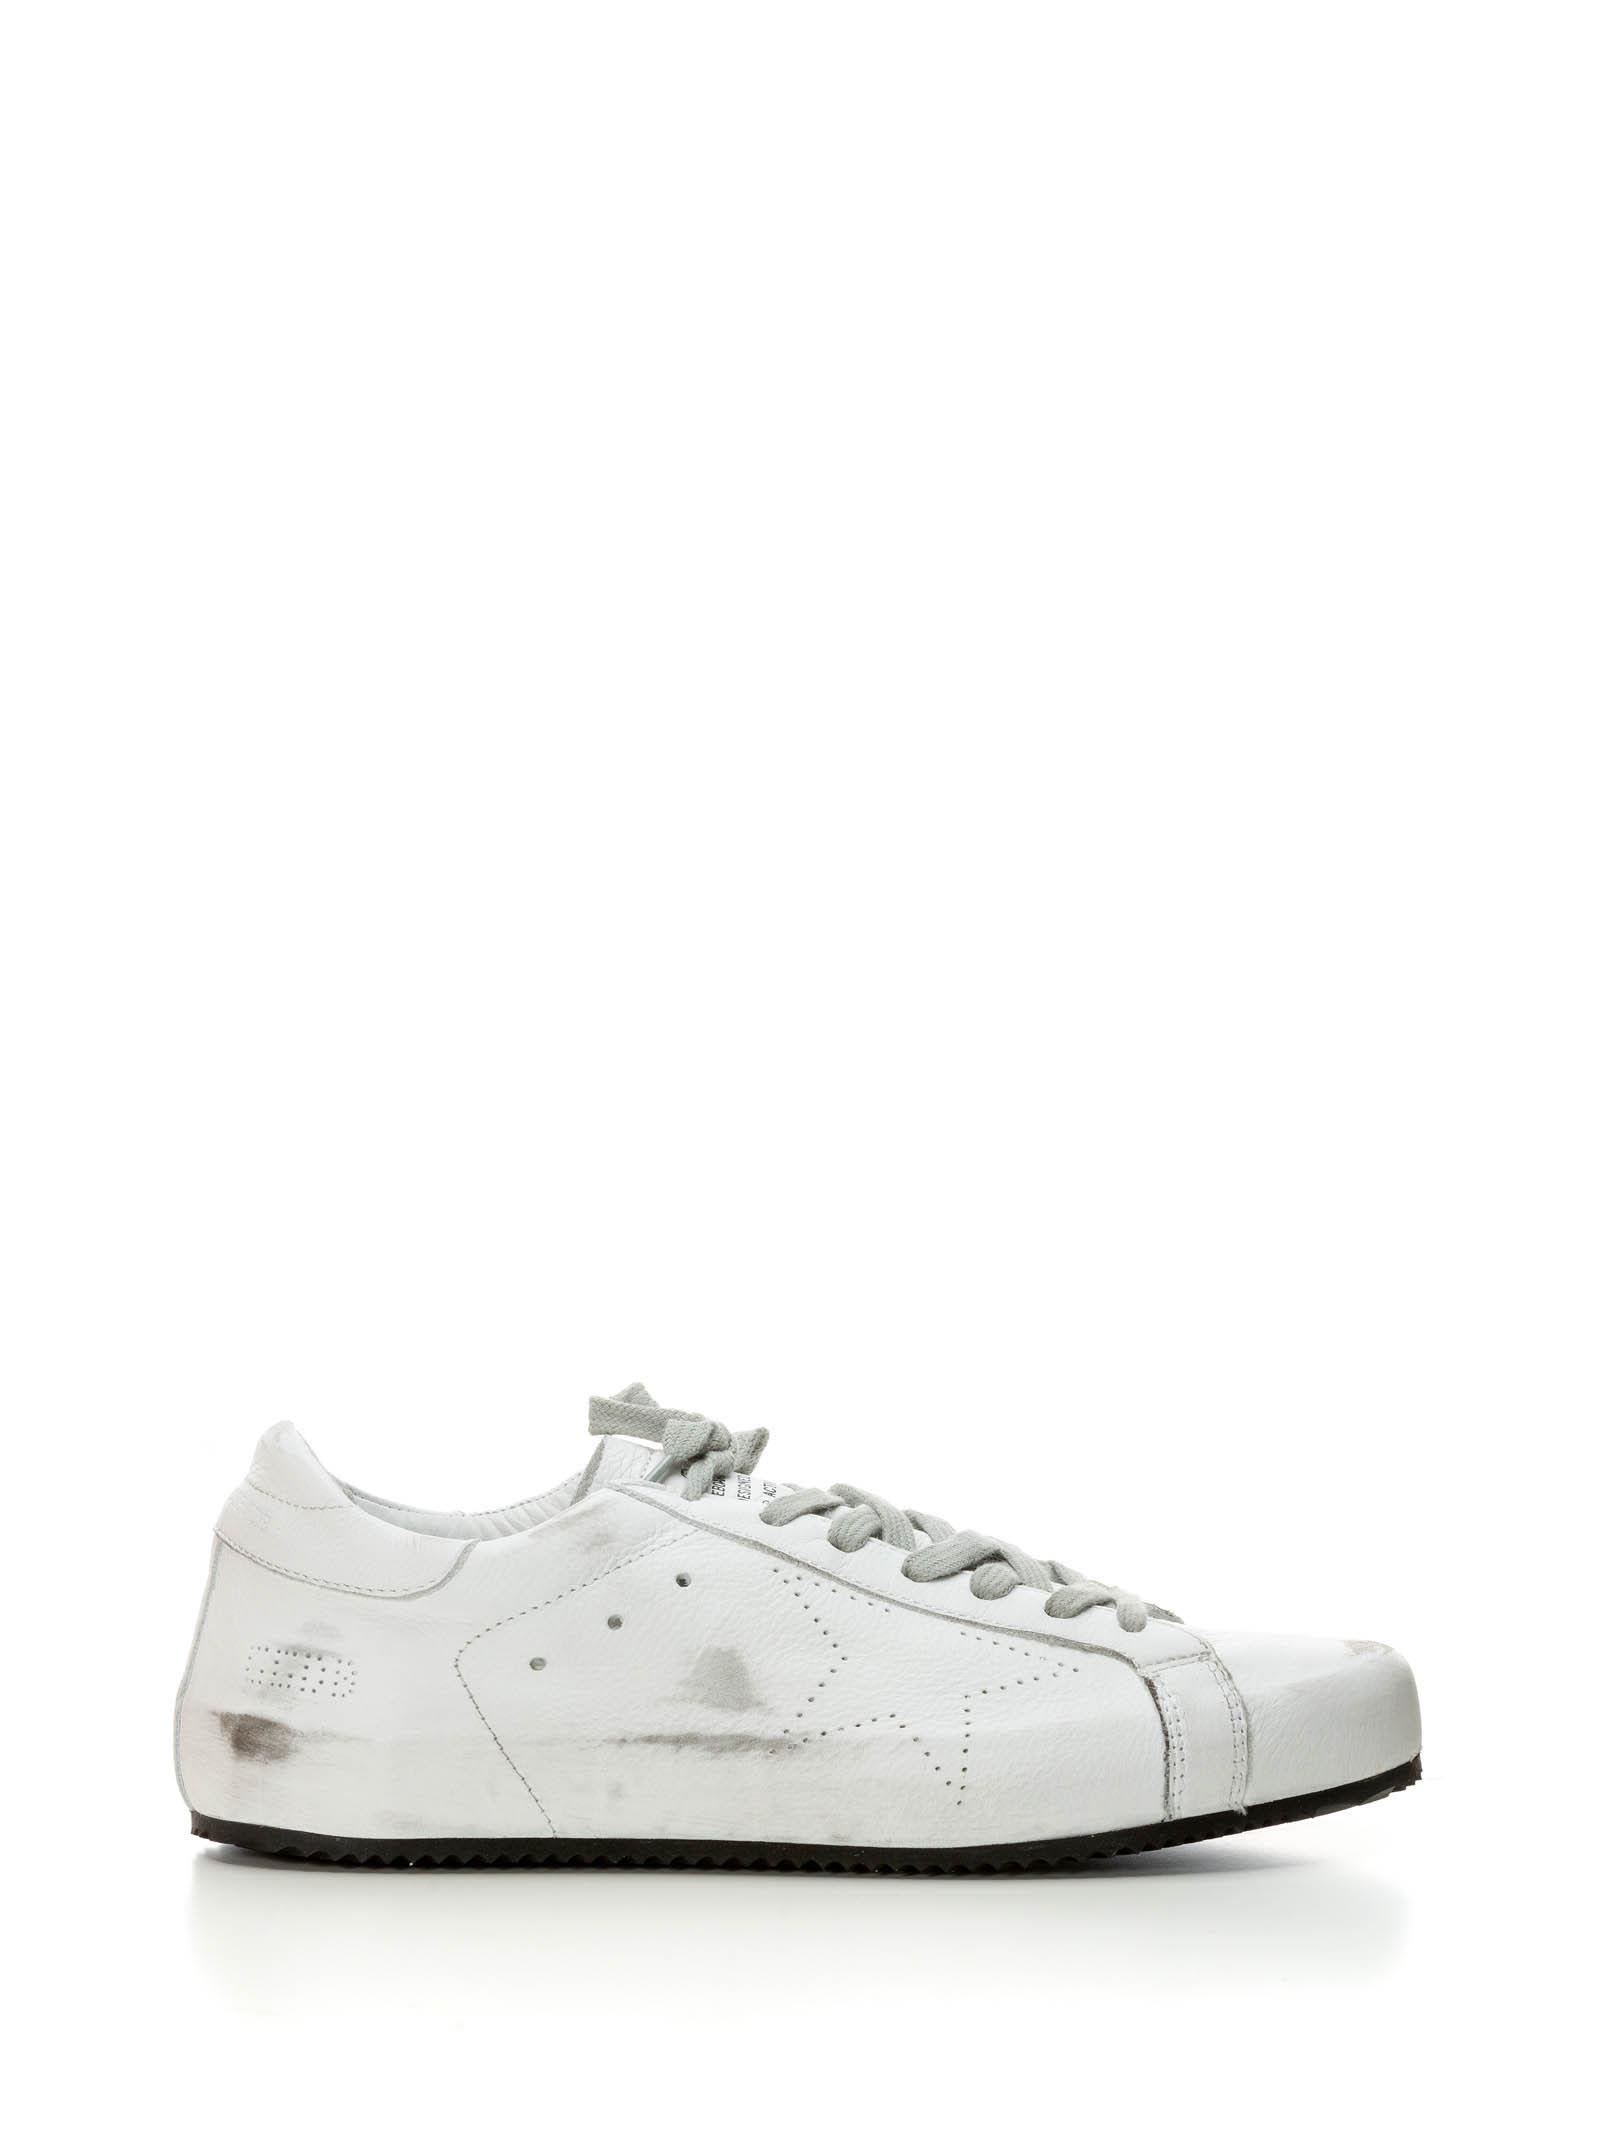 GOLDEN GOOSE WHITE LEATHER SNEAKERS